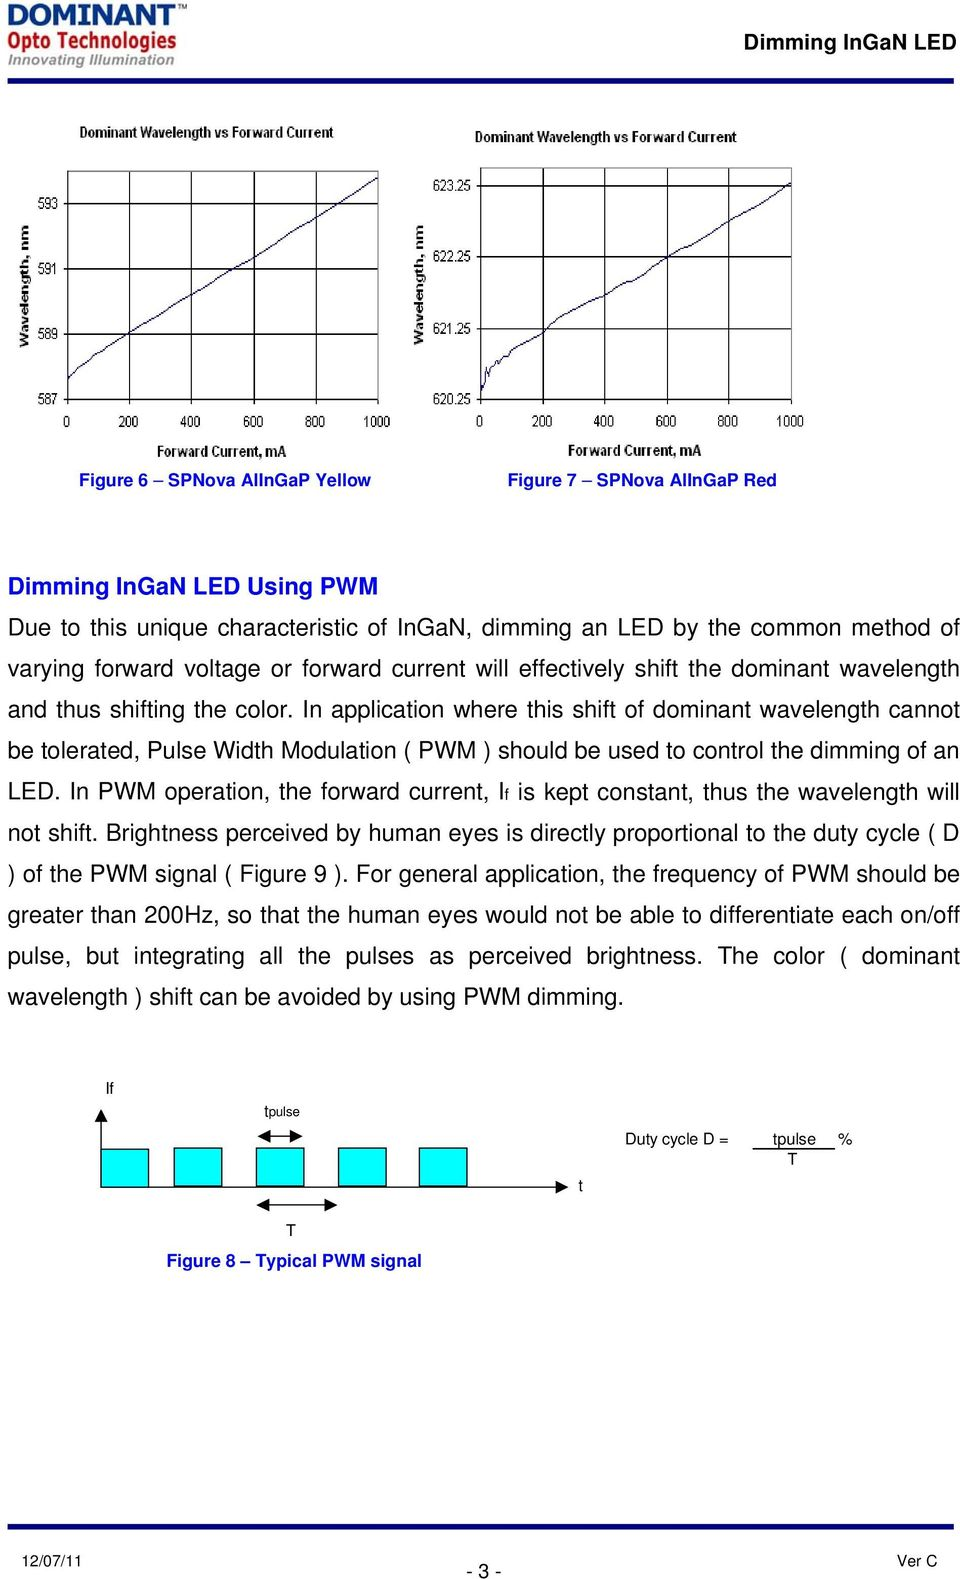 In application where this shift of dominant wavelength cannot be tolerated, Pulse Width Modulation ( PWM ) should be used to control the dimming of an LED.